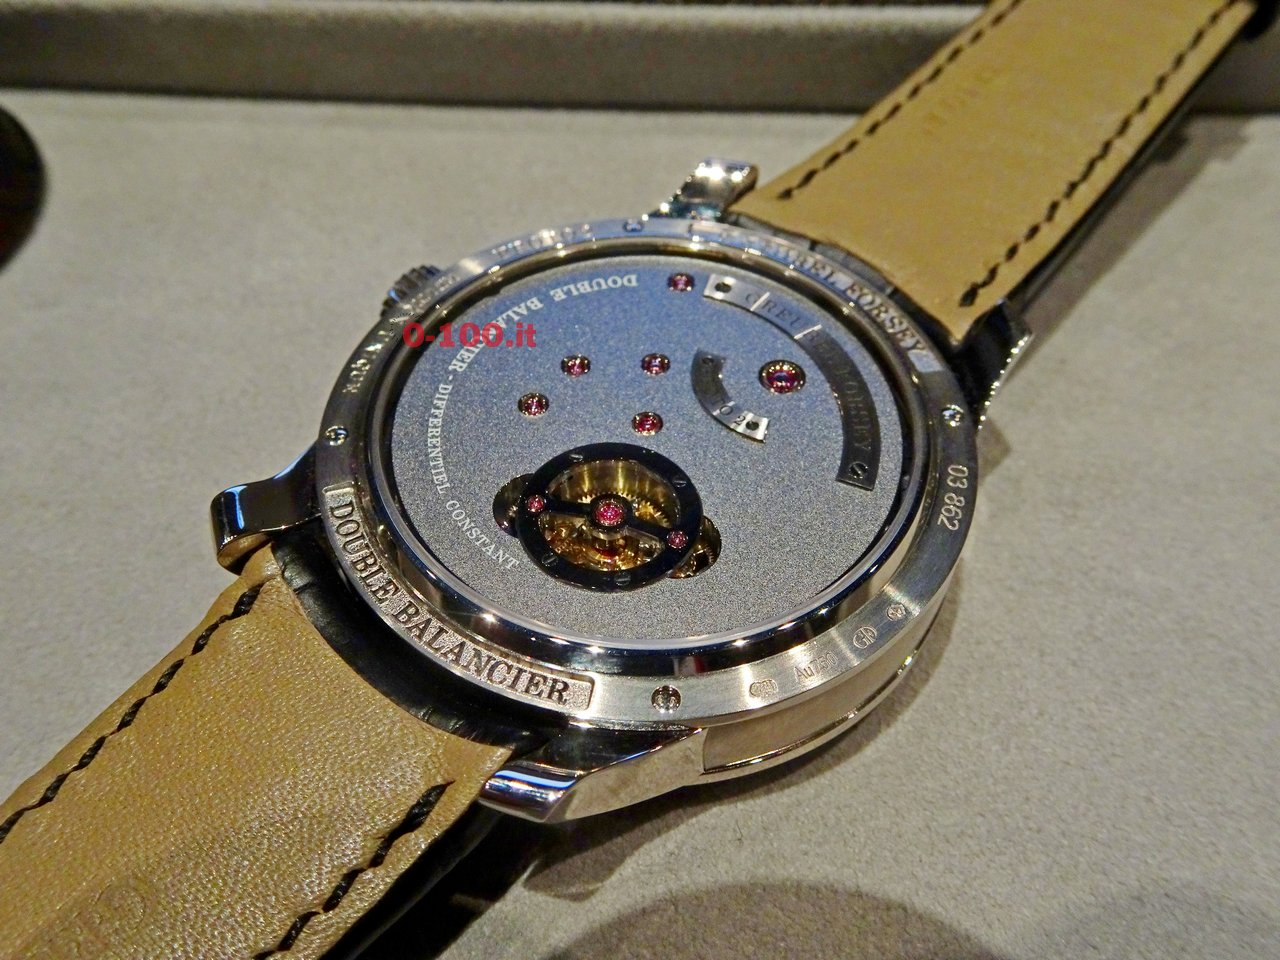 greubel-forsey-sihh-2016-0-100_111